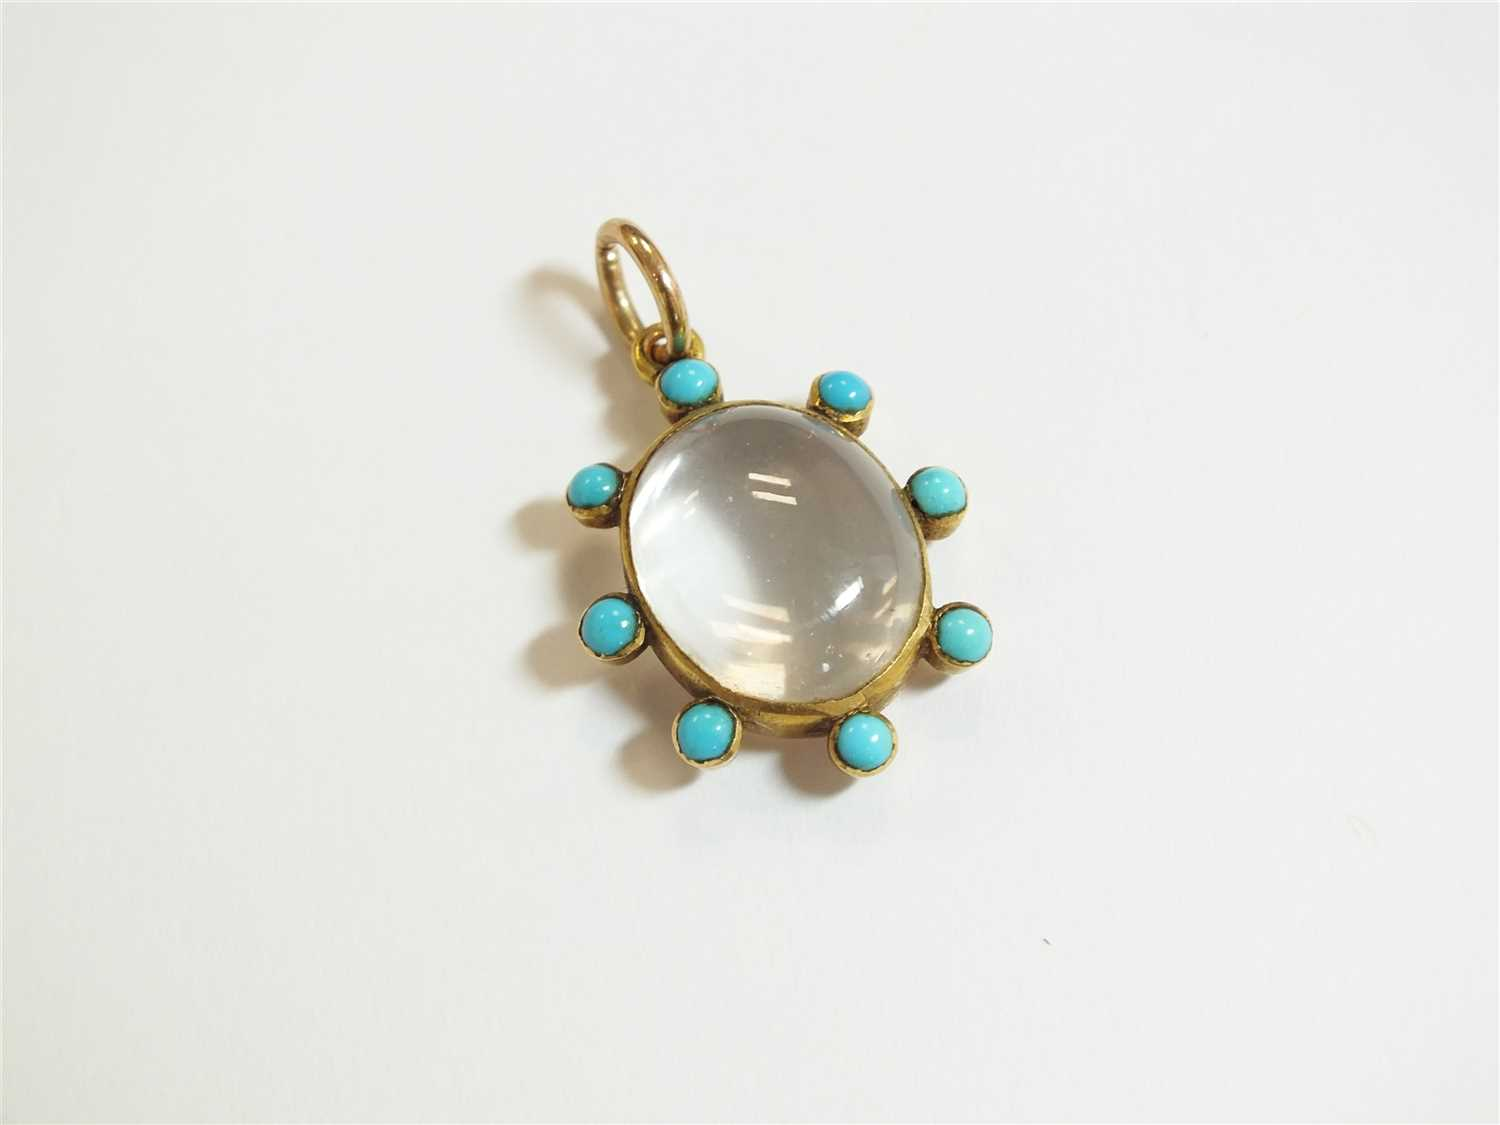 Lot 10-A 19th century turquoise and rock crystal locket pendant